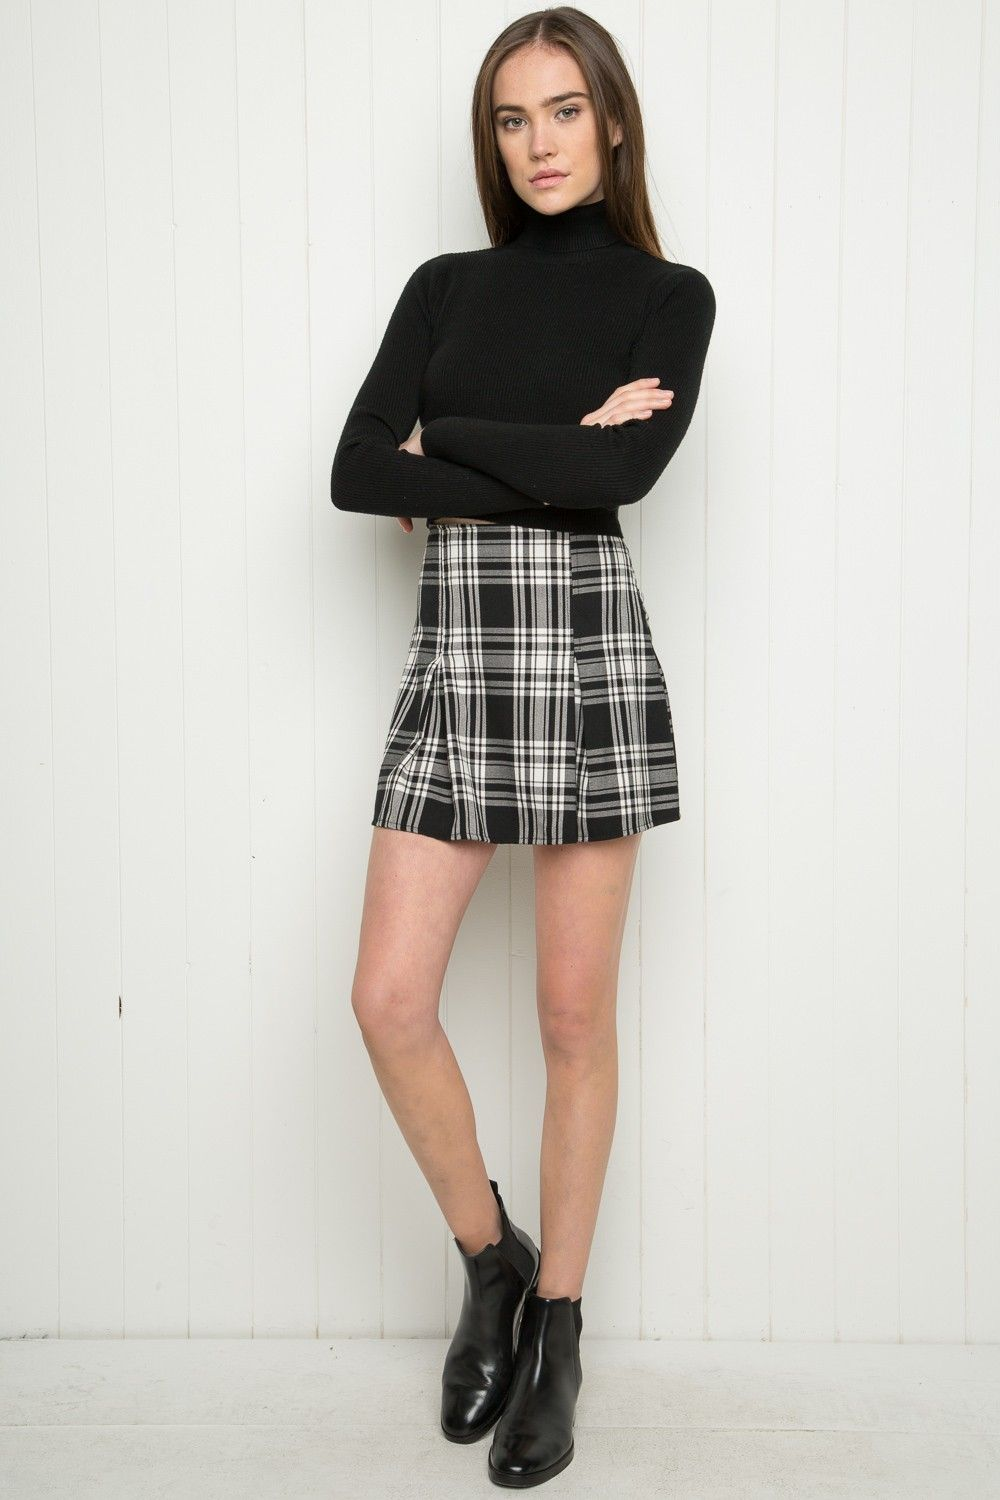 b314ec43c4 Brandy ♥ Melville | Kaitlee Skirt - Clothing Silky black and white plaid  skirt with pleated detailing in front, elasticized waist and a hidden side  zipper.